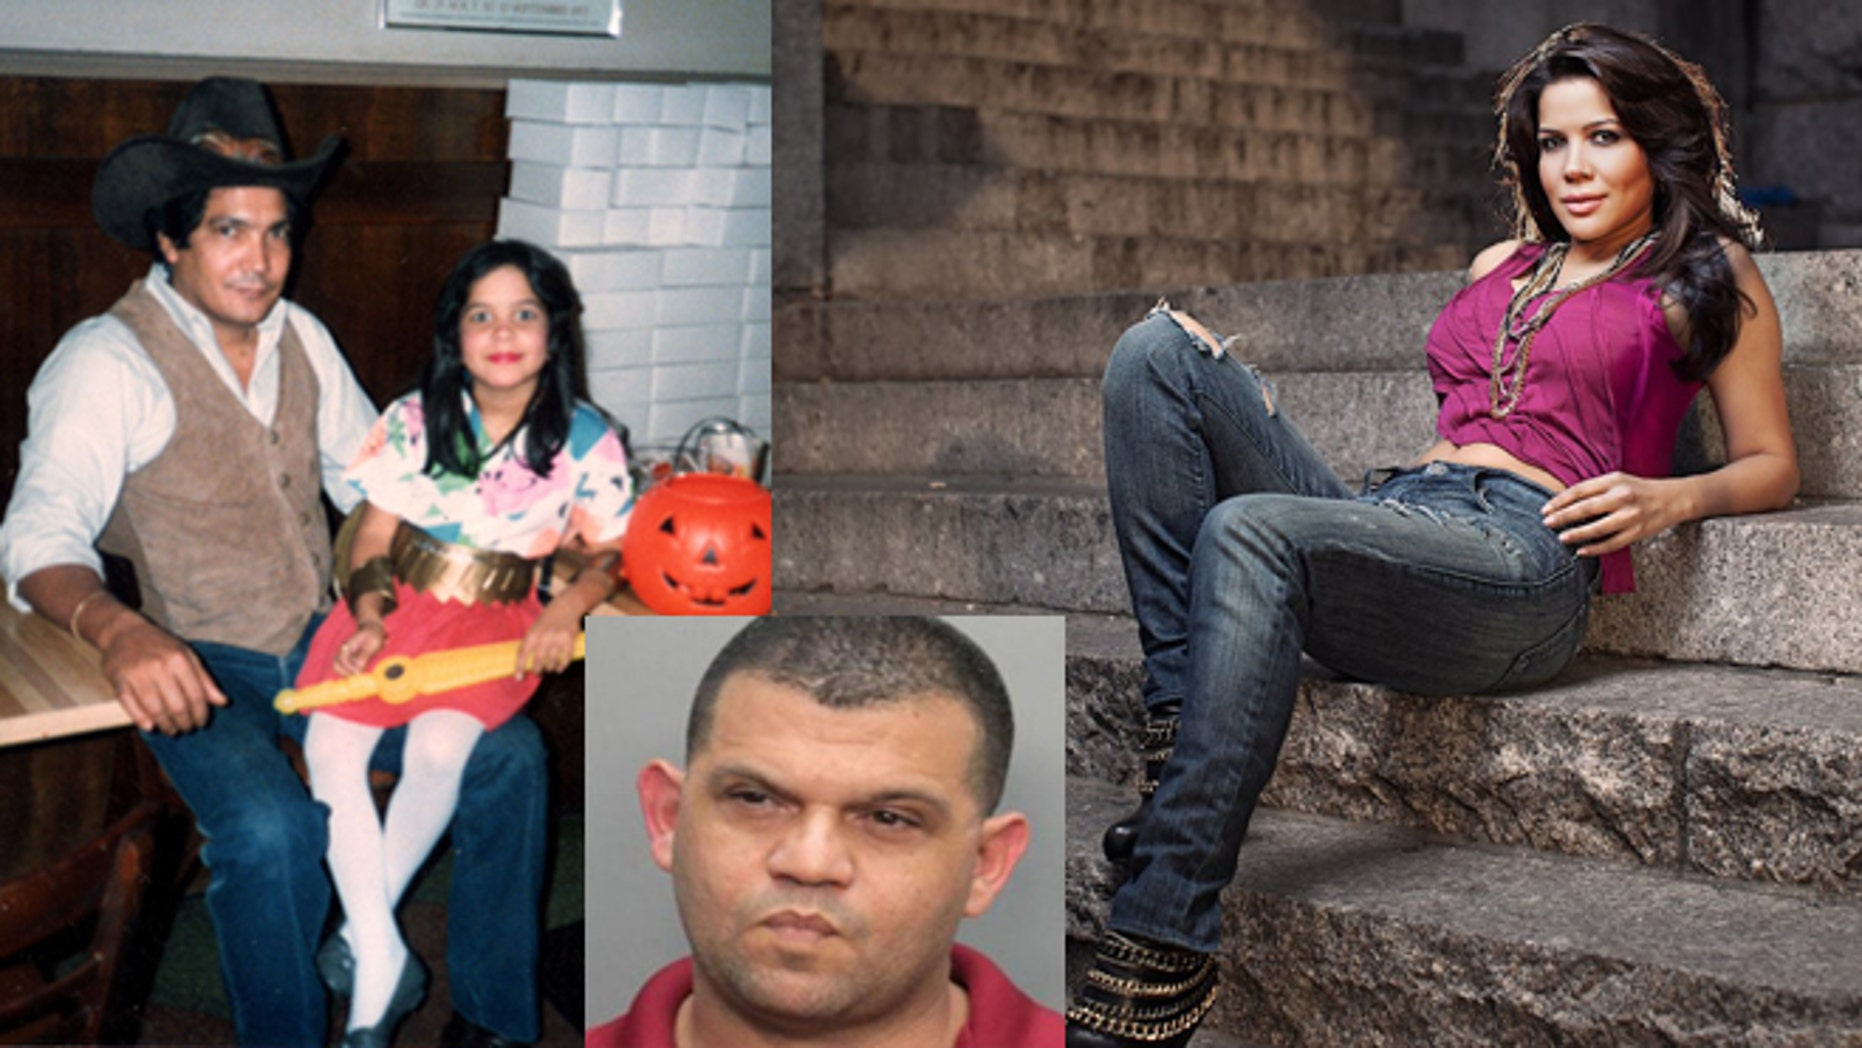 Left: José and Joselyn Martinez, Halloween 1985. Right: Joselyn Martinez today. Inset: Justo Santos' mug shot from 2013.